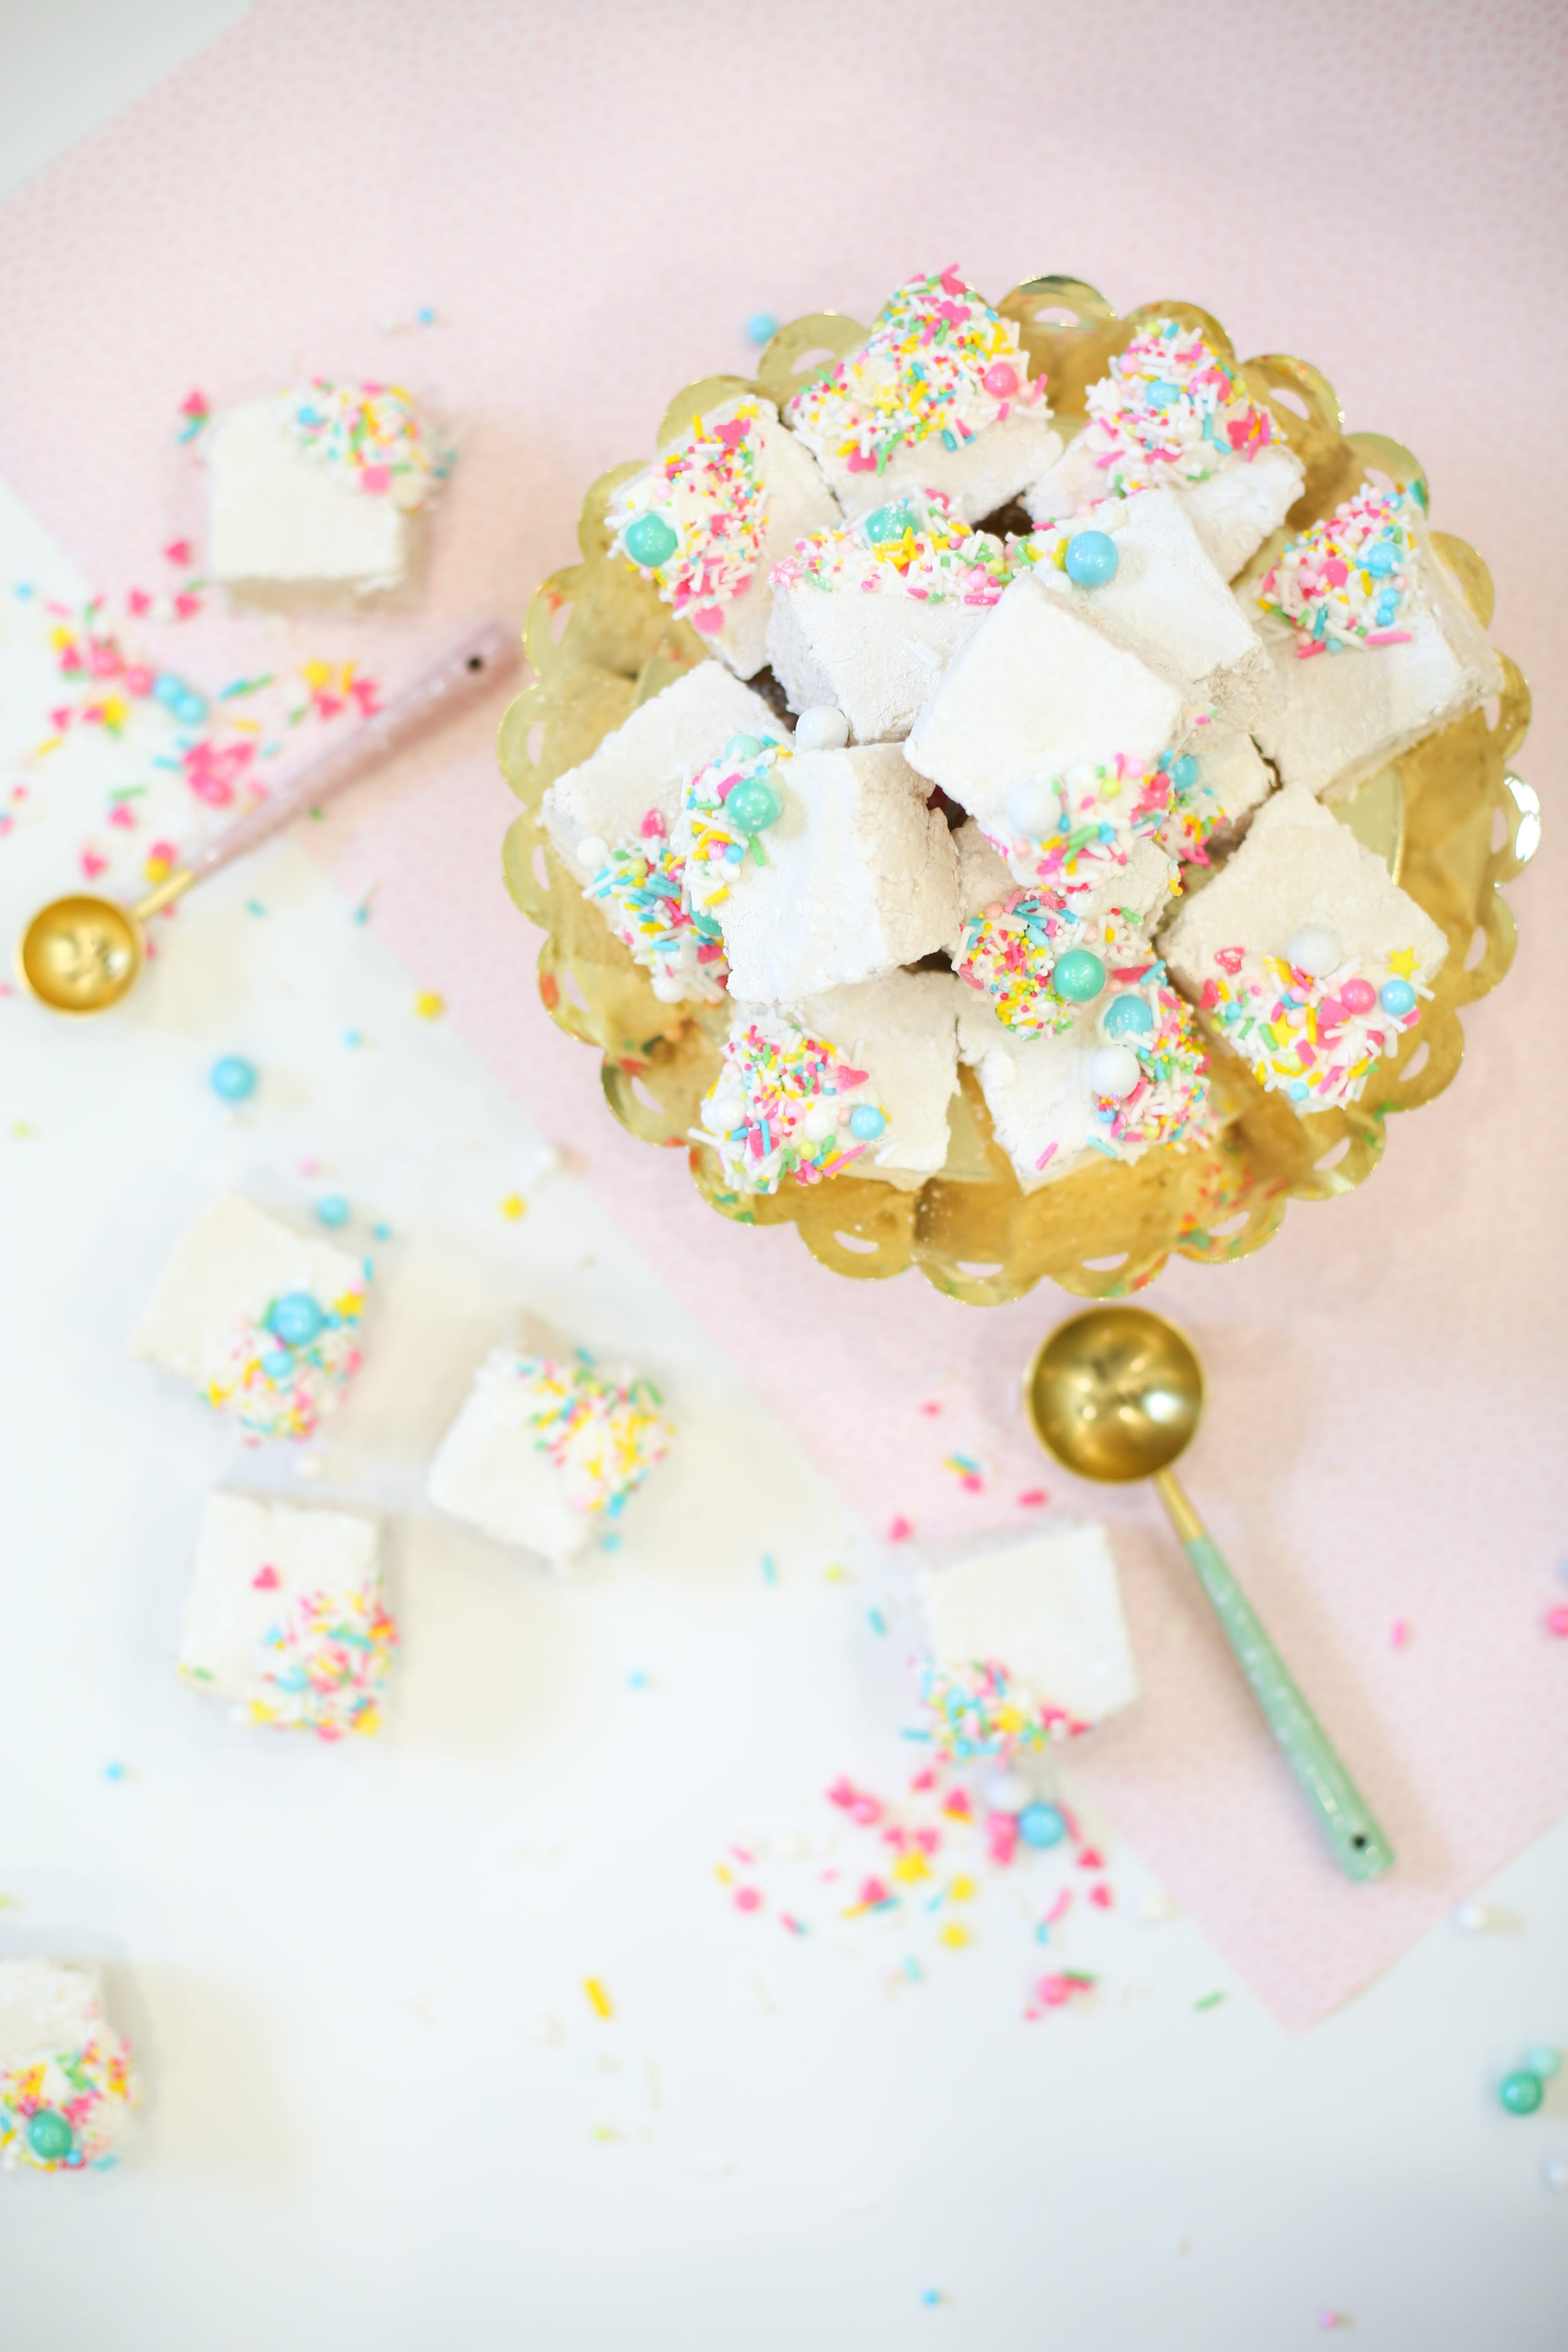 Homemade vanilla marshmallows with sprinkles